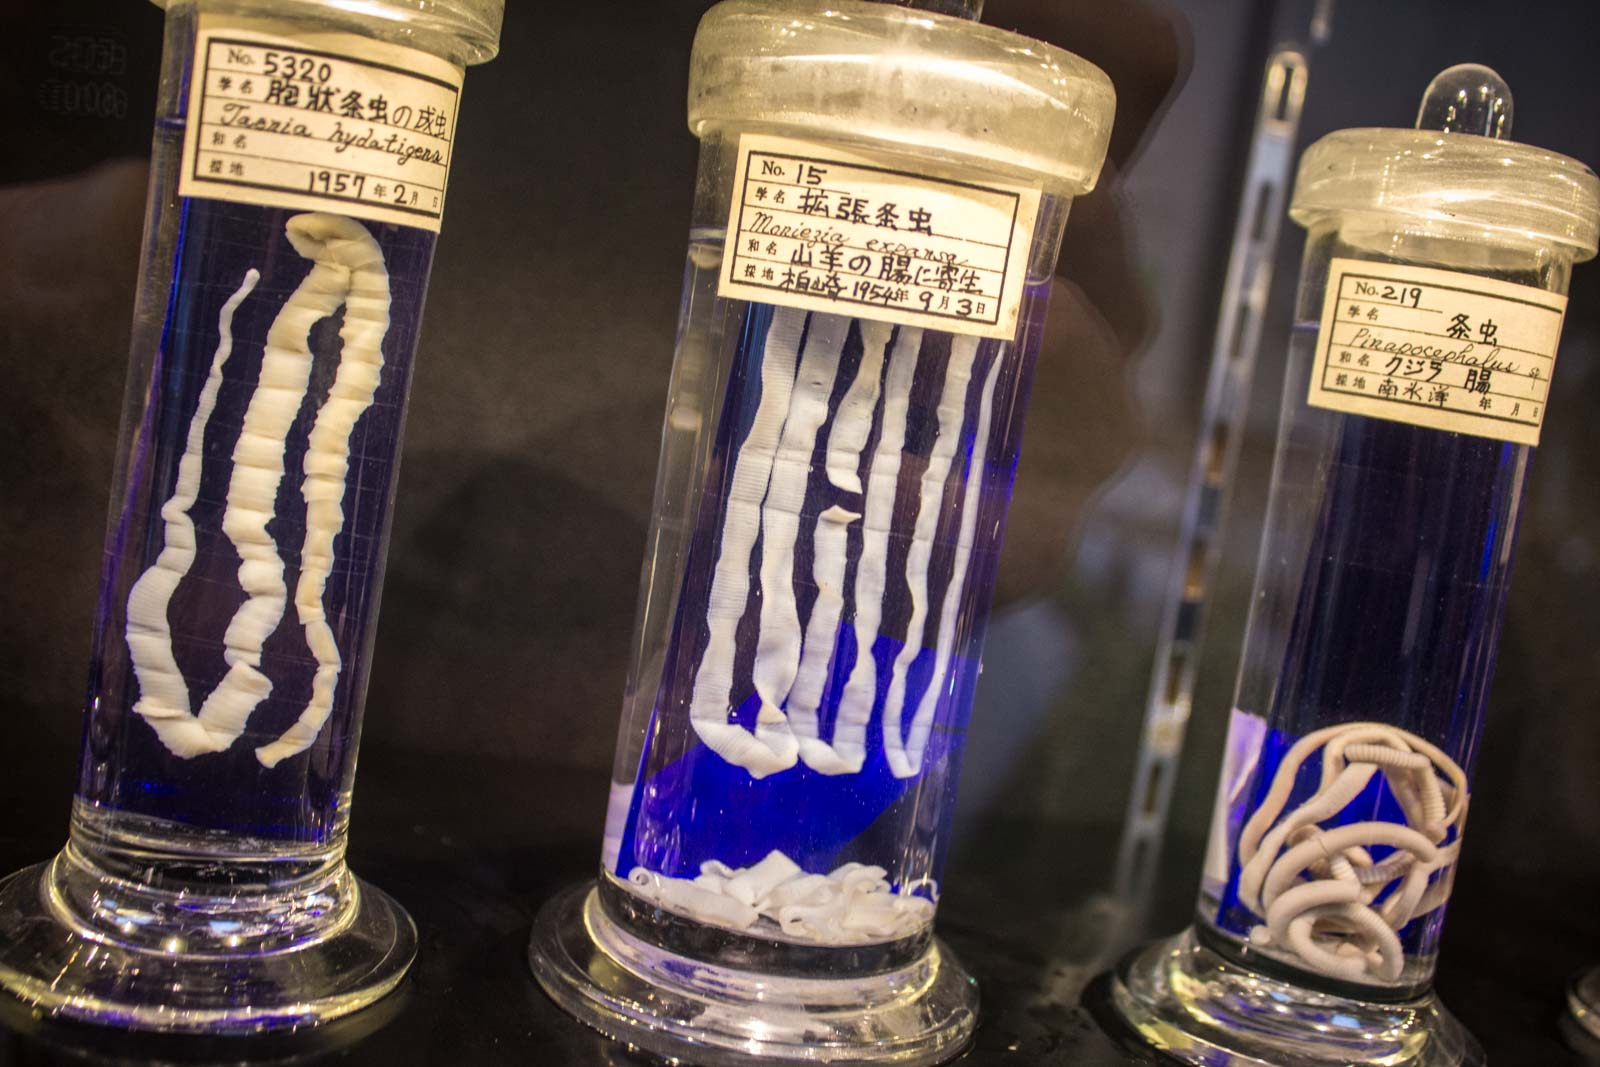 Meguro Parasitological Museum. Travel Writers' Guide: 50+ Best Science Museums Around the World.